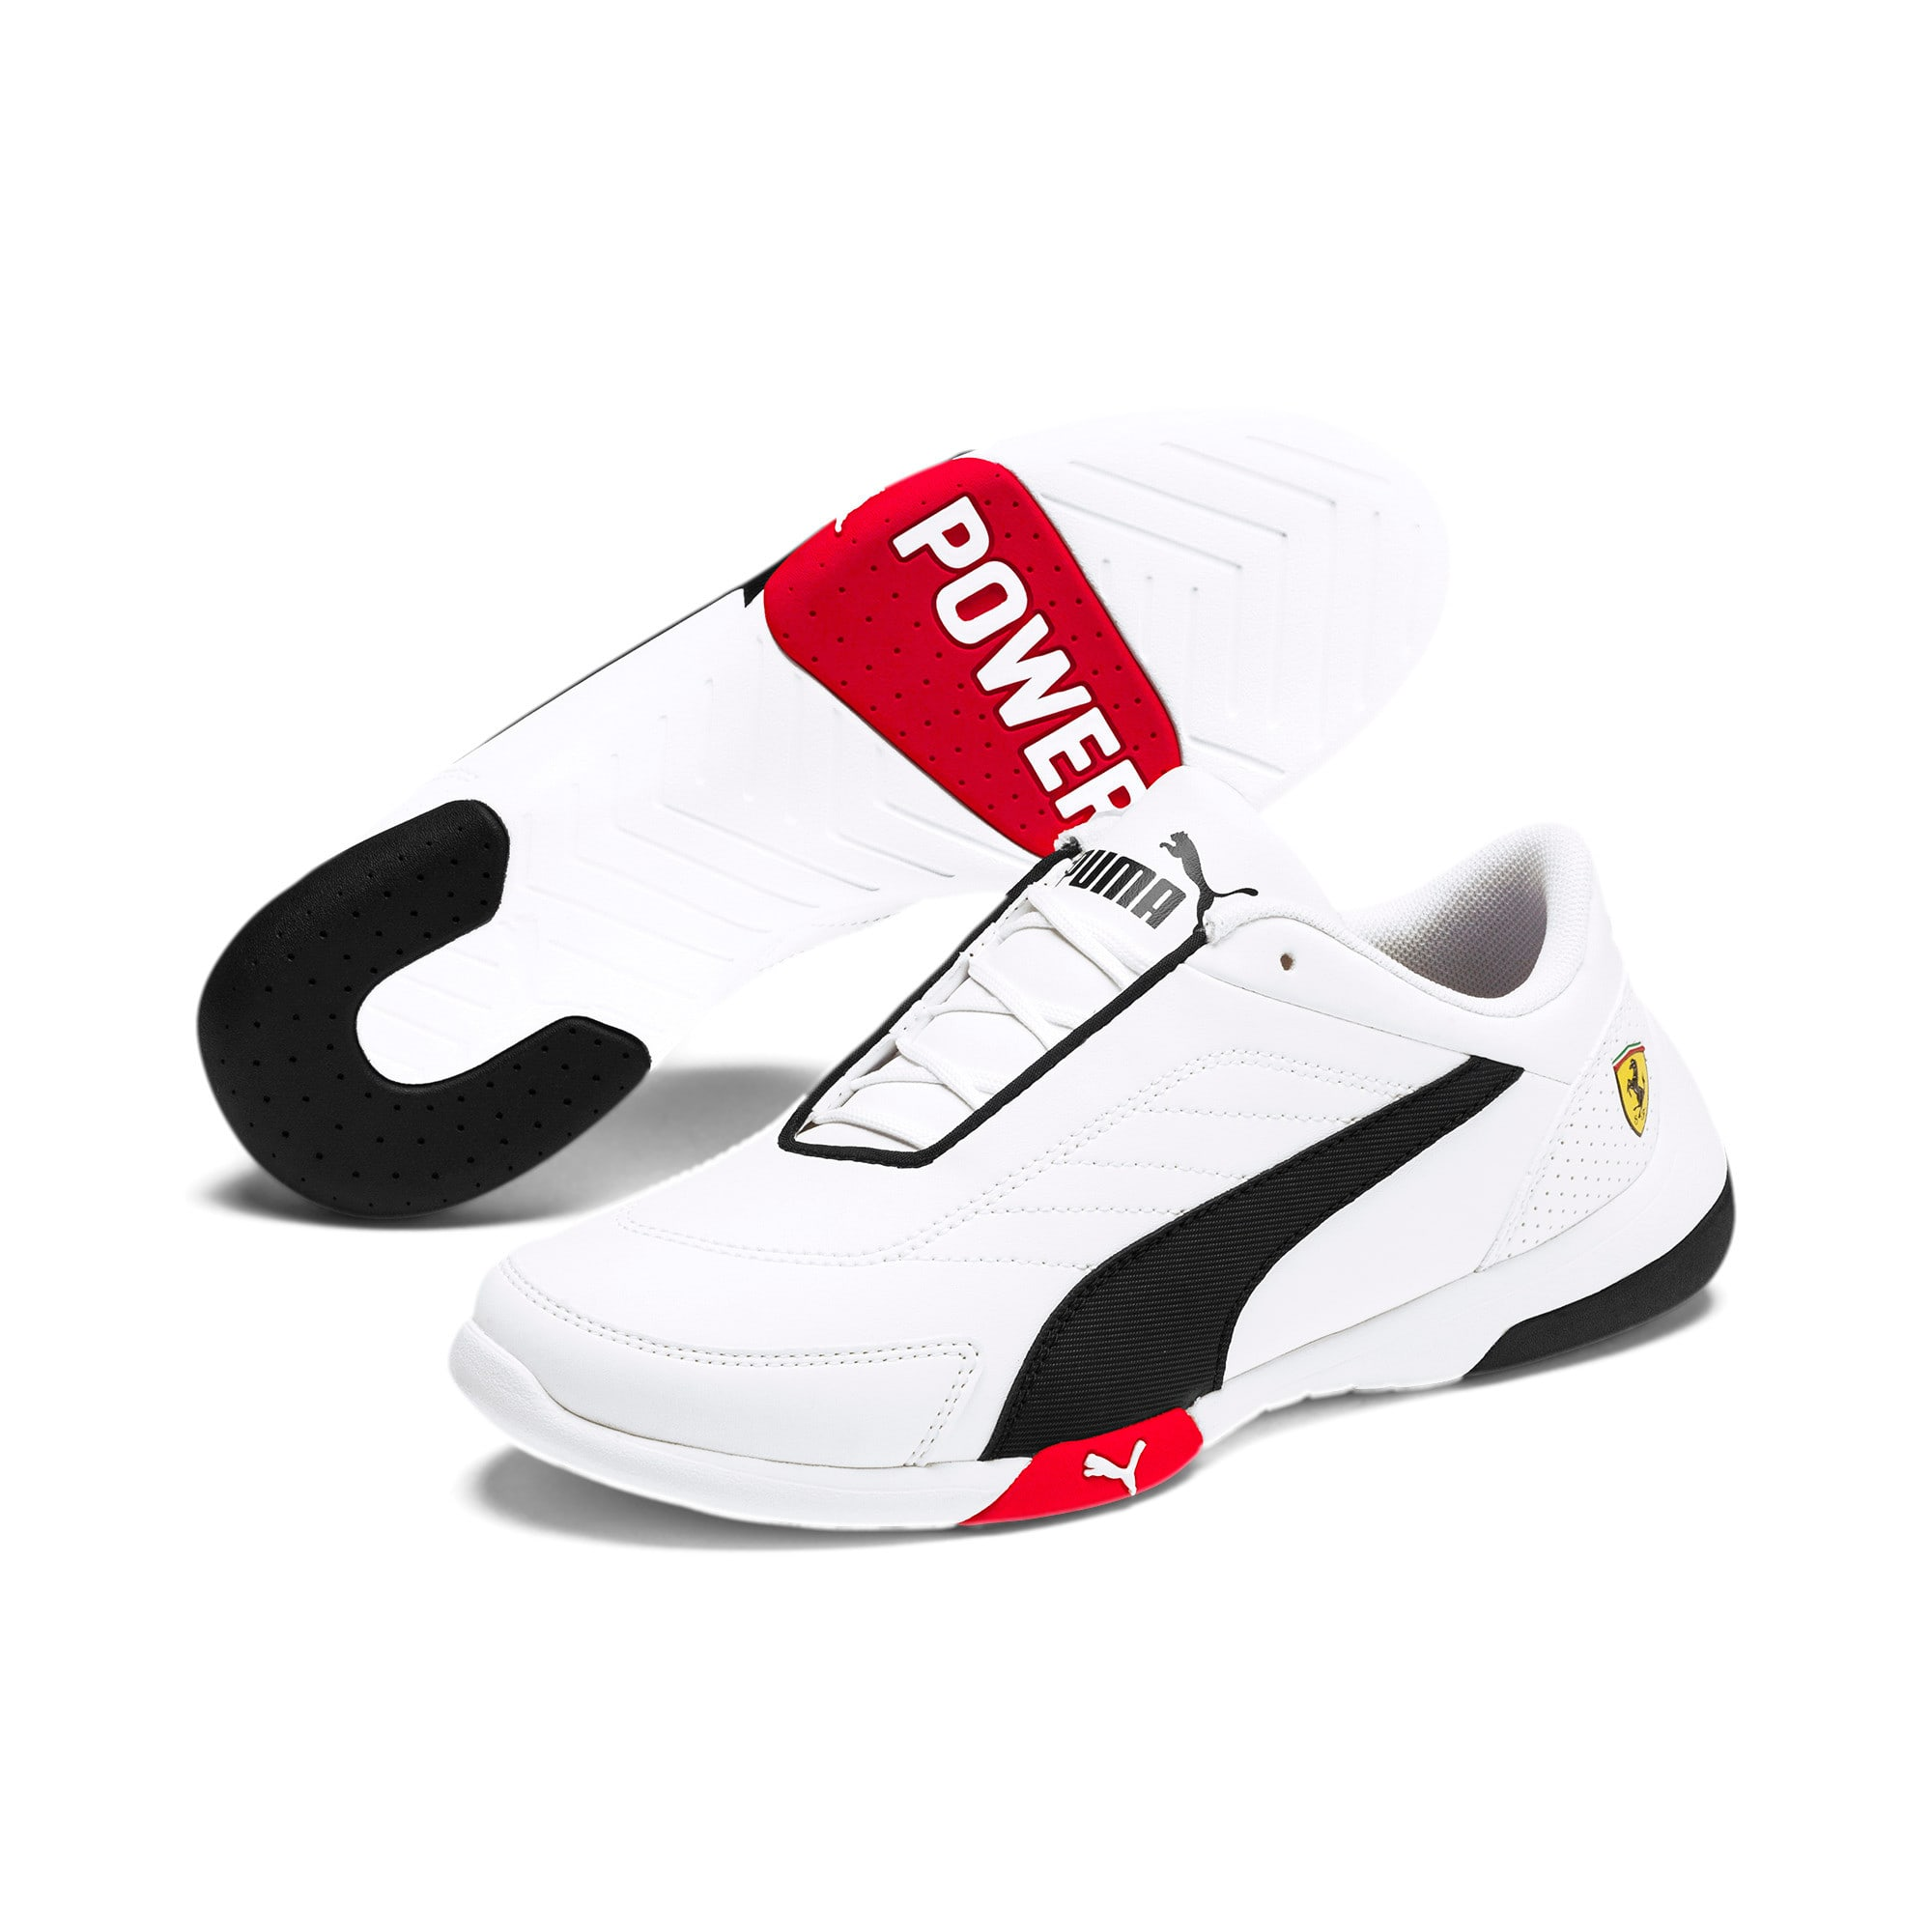 Ferrari Kart Cat III Youth sneakers, White-Black-Rosso Corsa, large